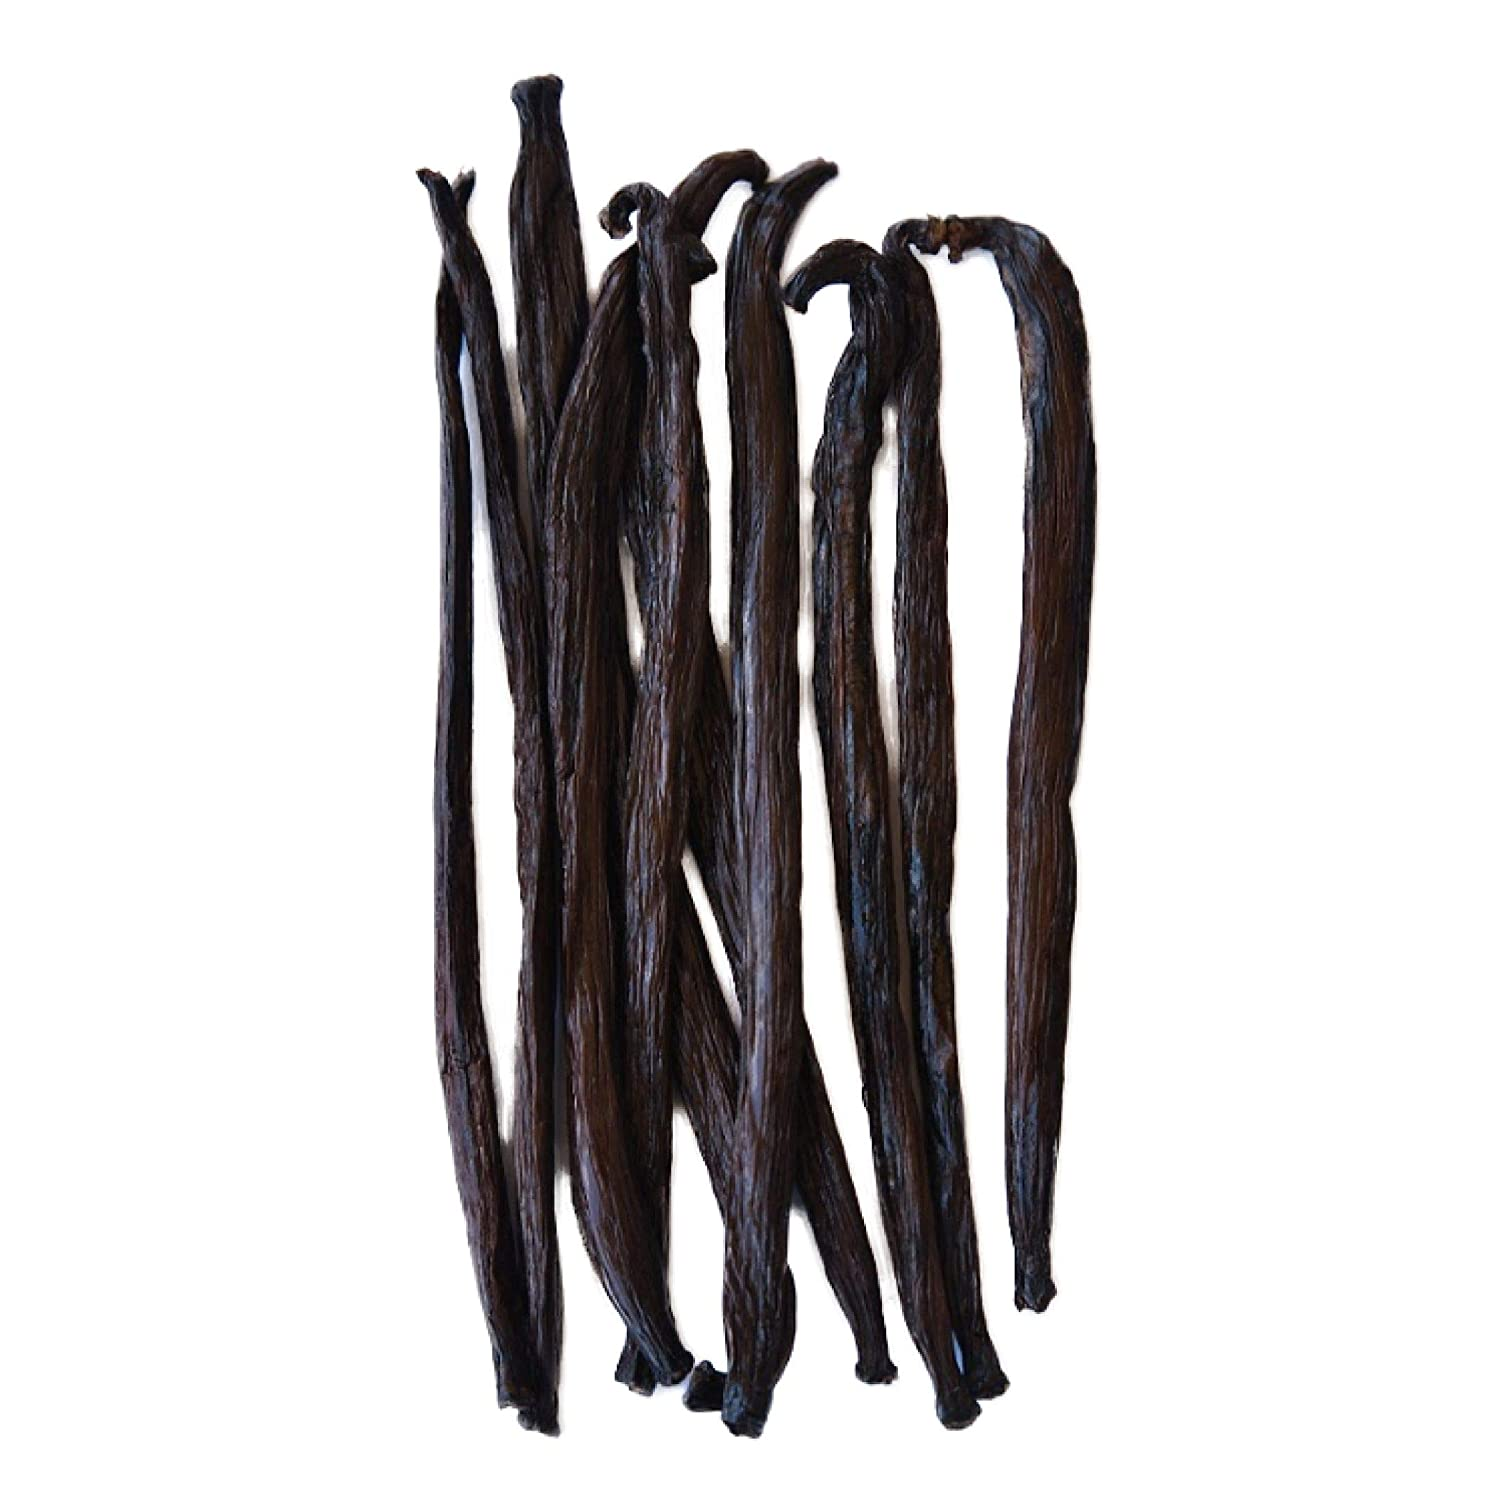 Native Vanilla Grade B Tahitian Vanilla Beans – 10 Premium Extract Whole Pods – For Chefs and Home Baking, Cooking, & Extract Making – Homemade Vanilla Extract